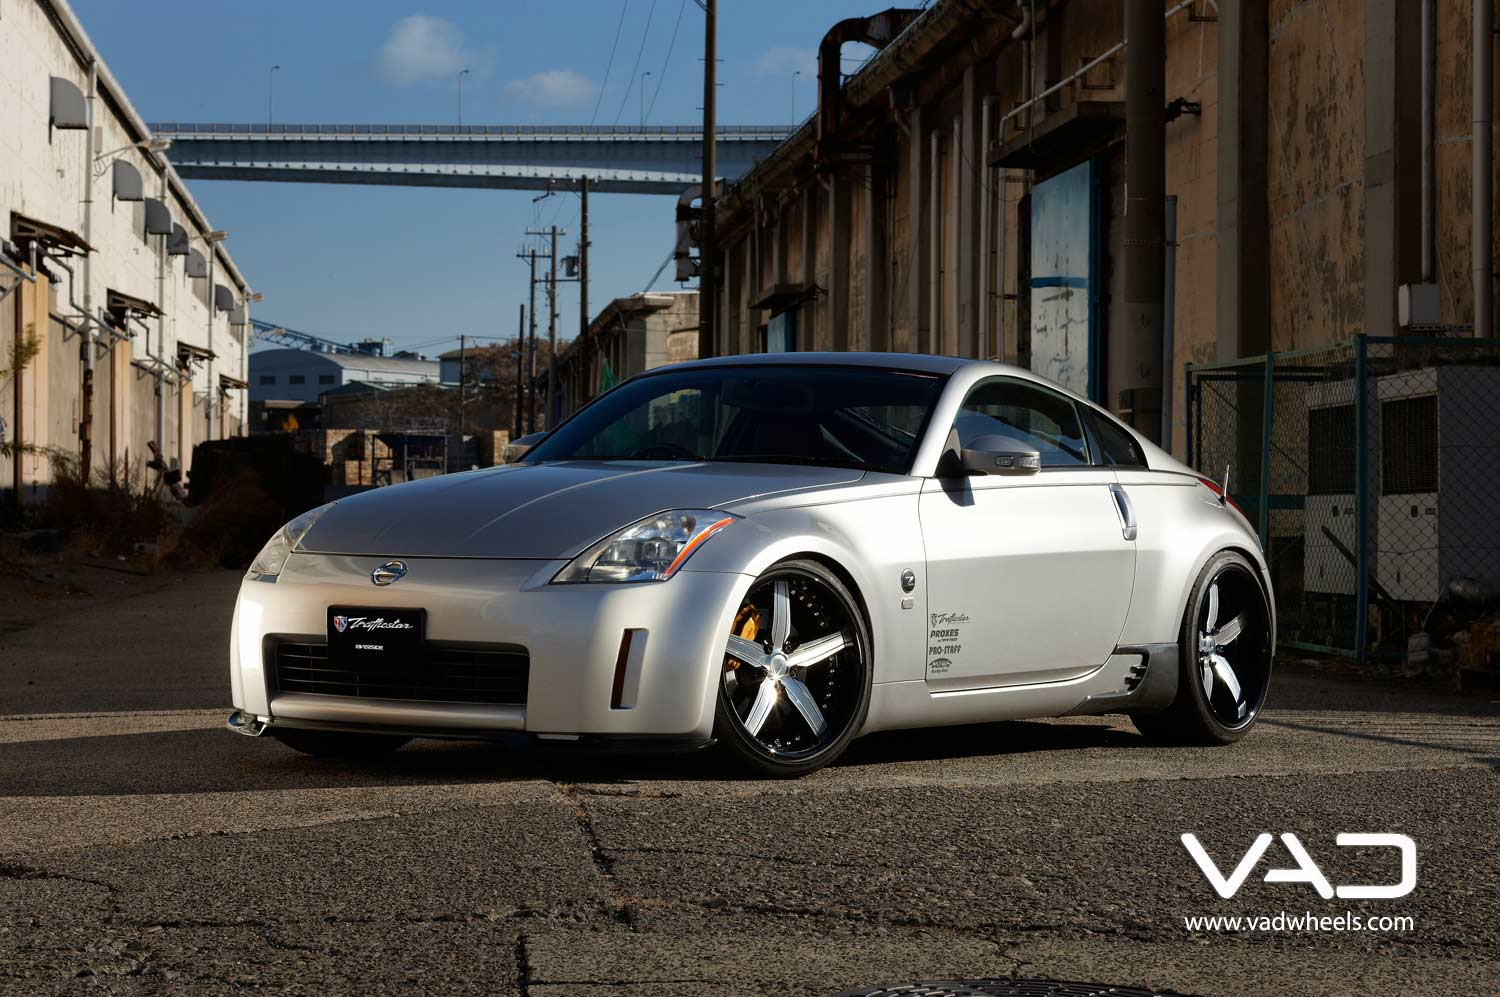 Nissan-350Z-Fitted-With-20''-Trafficstar-STR